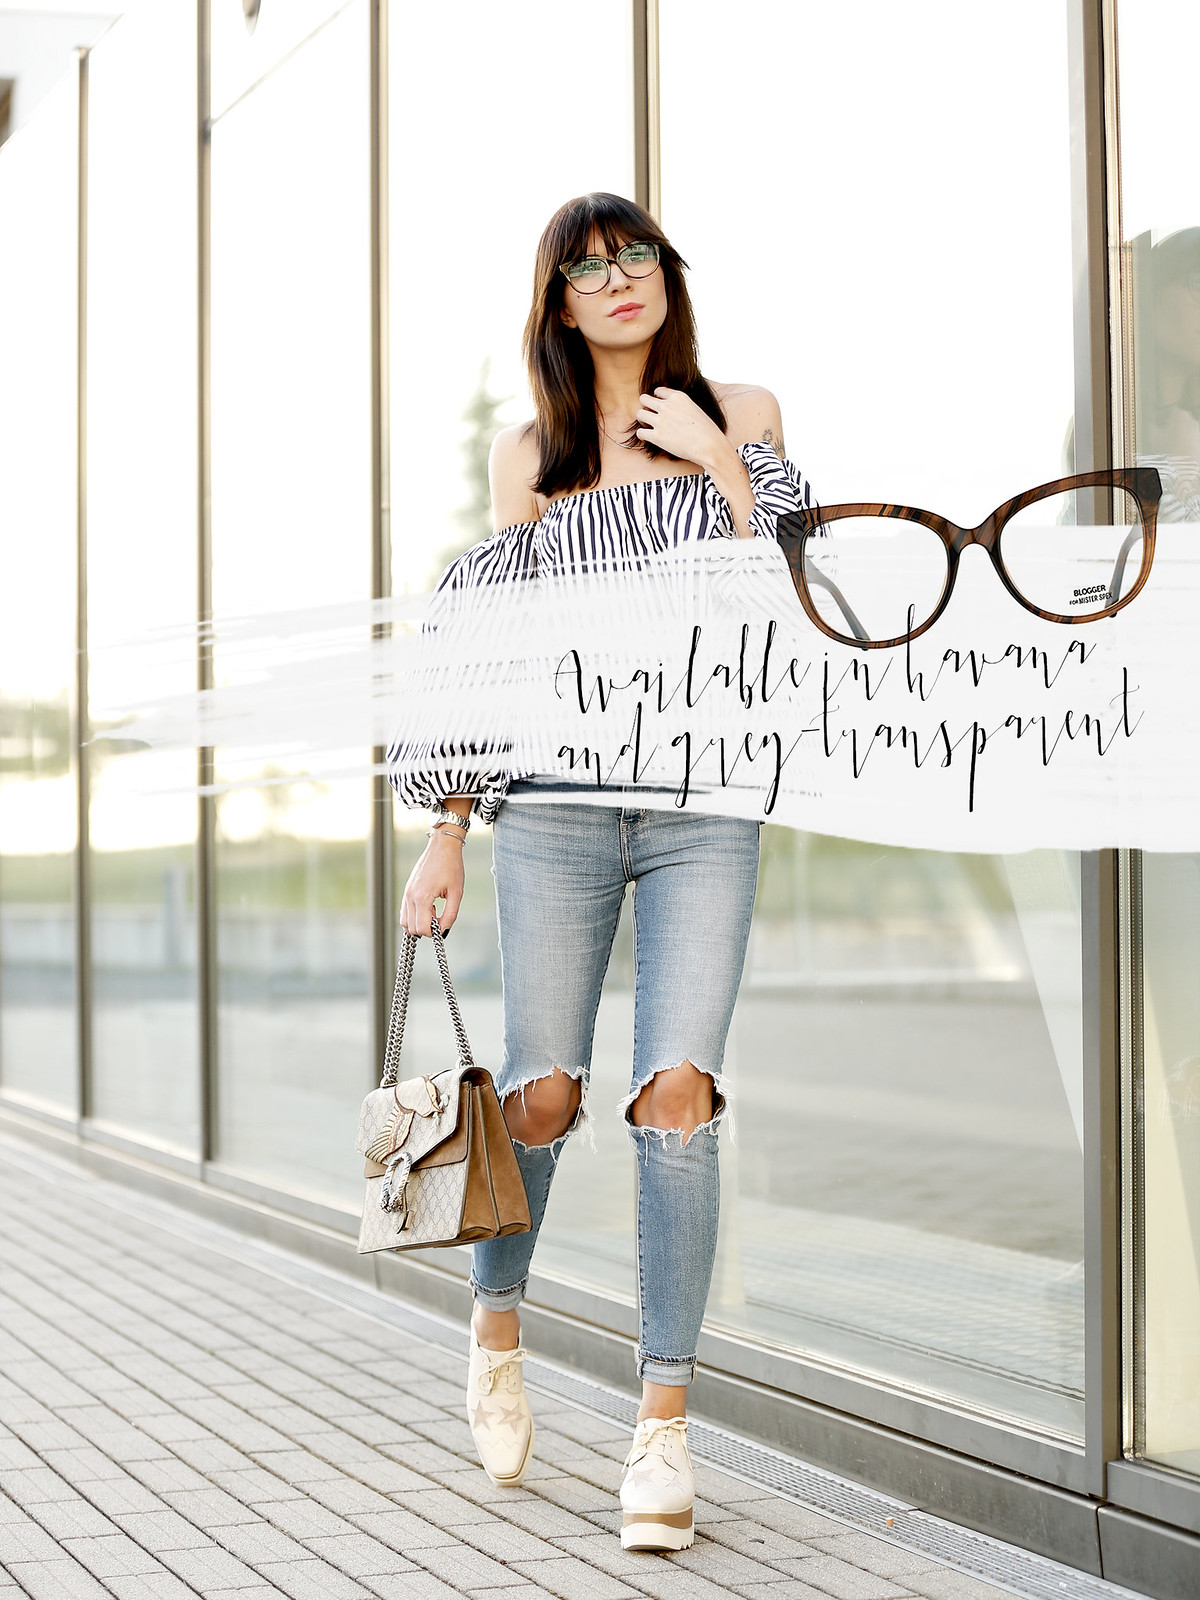 blogger for mister spex glasses collection launch september bloggercollection design cats & dogs fashion style blog ricarda schernus modeblogger off shoulder striped top gucci dionysus bag stella mccartney platform shoes ootd lookbook onlineshop brille 5